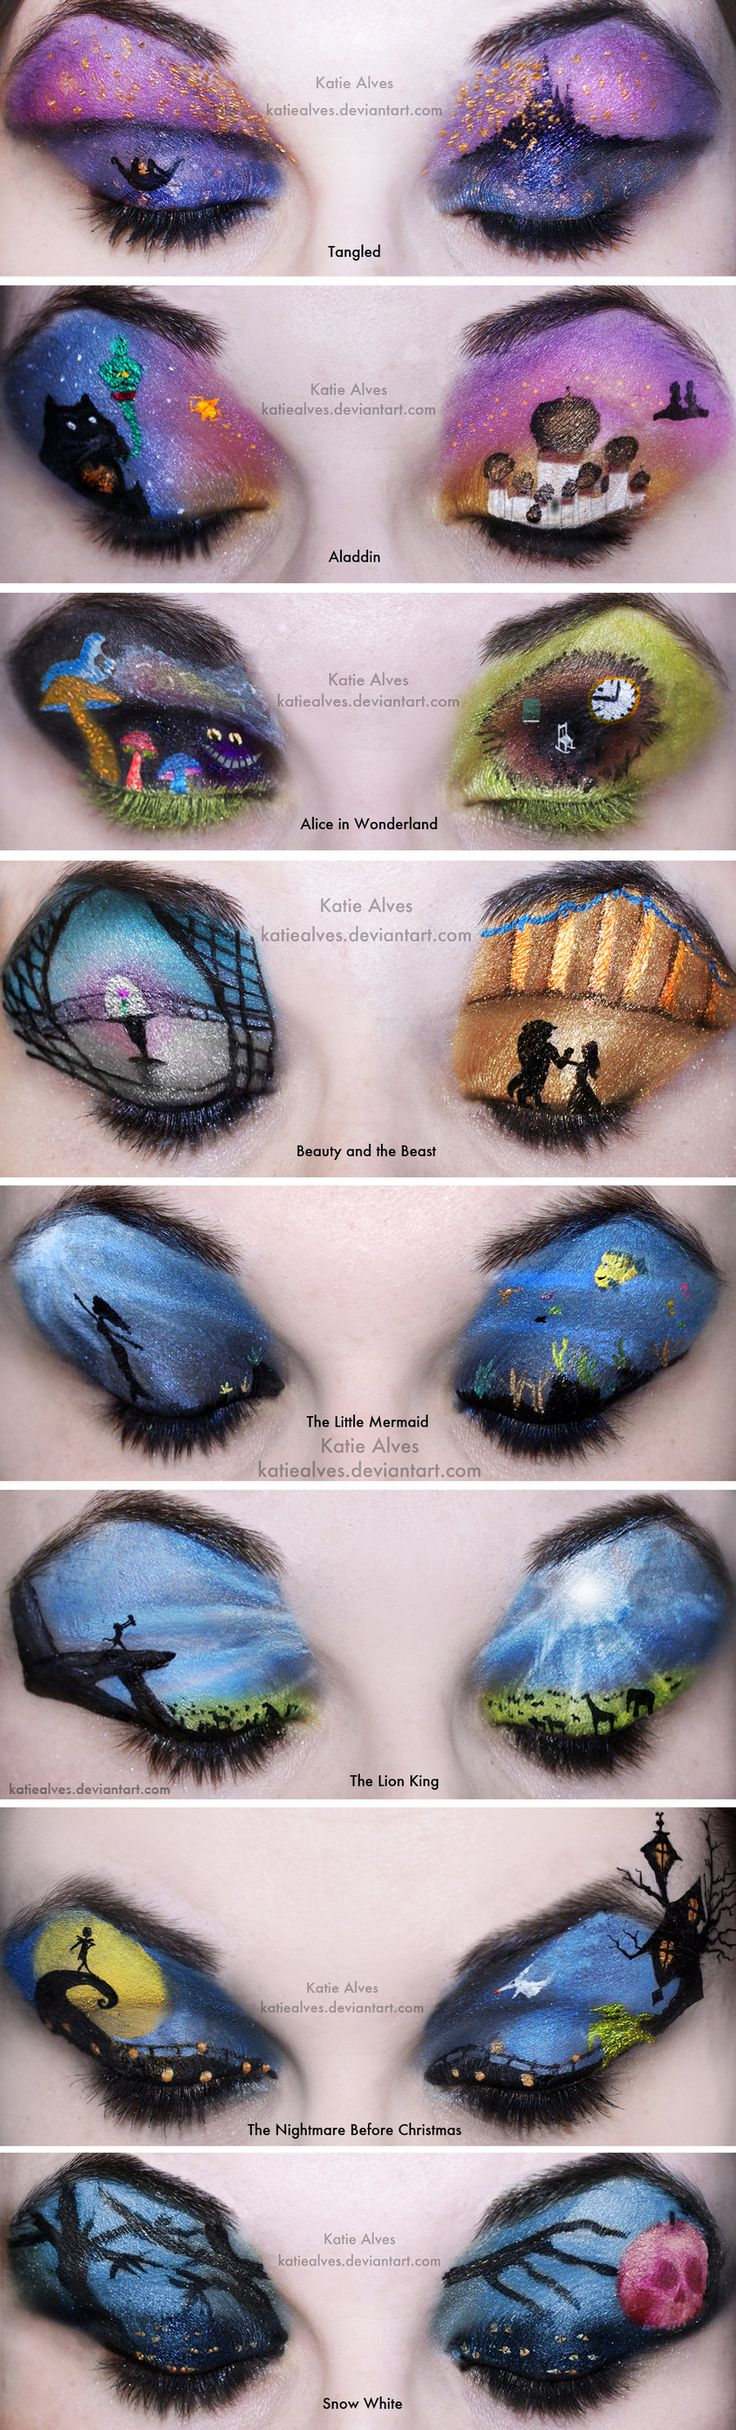 Twenty-one year old make-up artist Katie Alves creates detailed drawings using just every day cosmetics to draw stunning scenes on eyelids. Katie works as a graphic designer in a print shop in Port Perry near her home in Ontario in Canada.